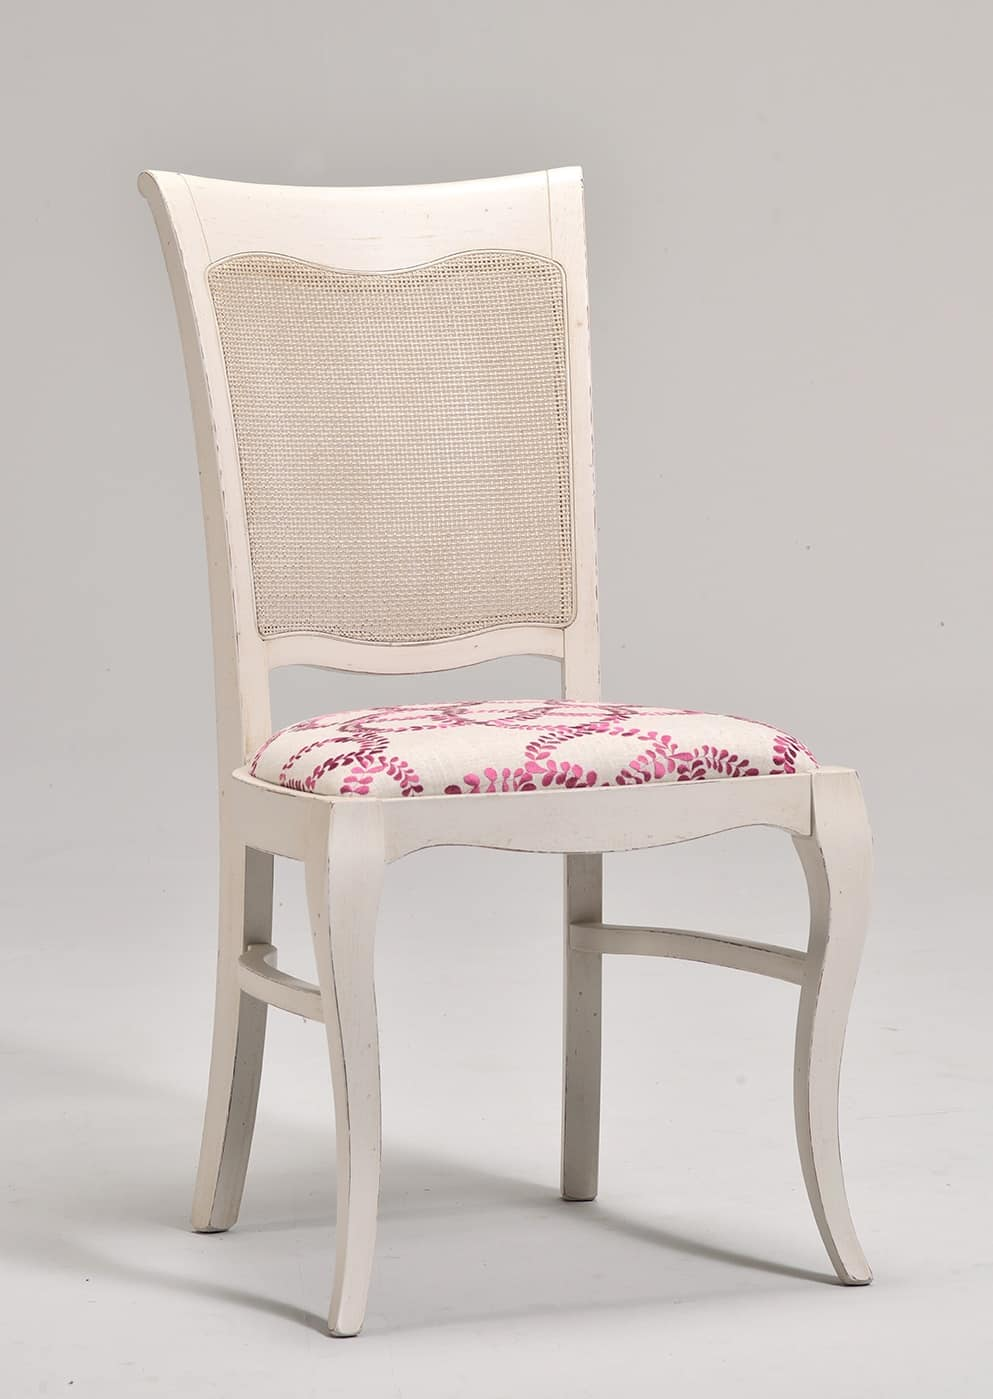 MILUNA chair (with cane) 8127S, Classic style chair with padded seat and backrest